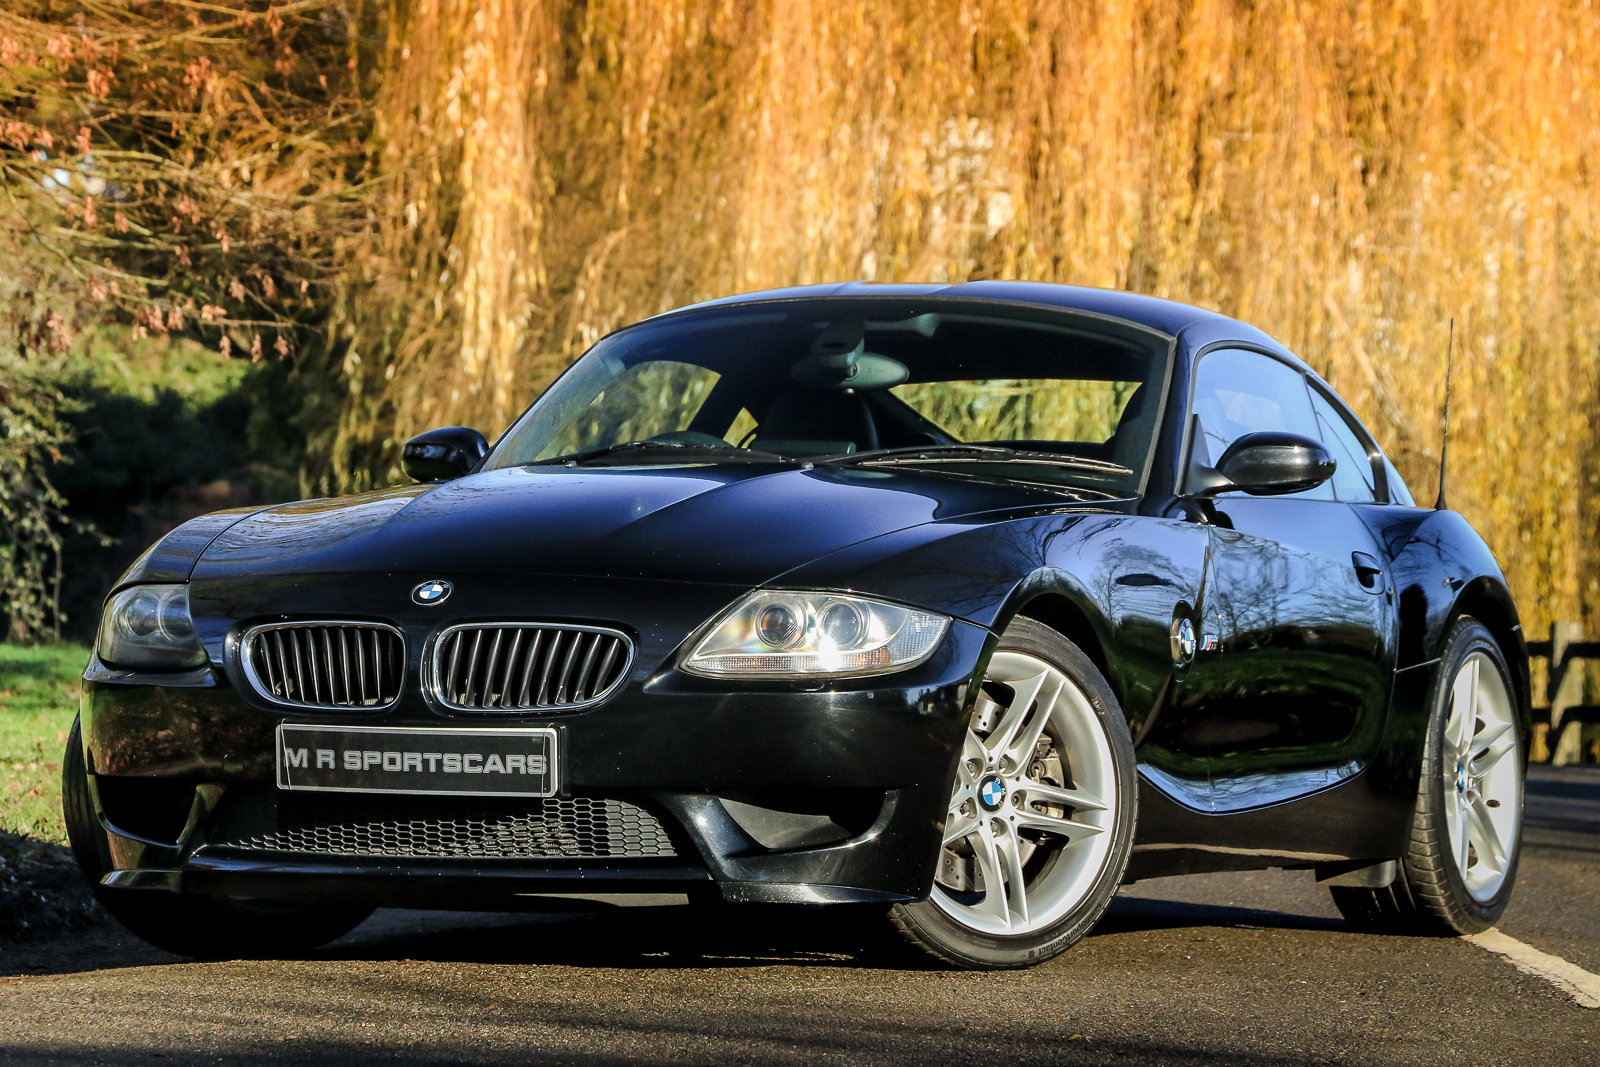 2006 BMW Z4M Coupe Sapphire Black with Inspection II Service For Sale (picture 2 of 6)